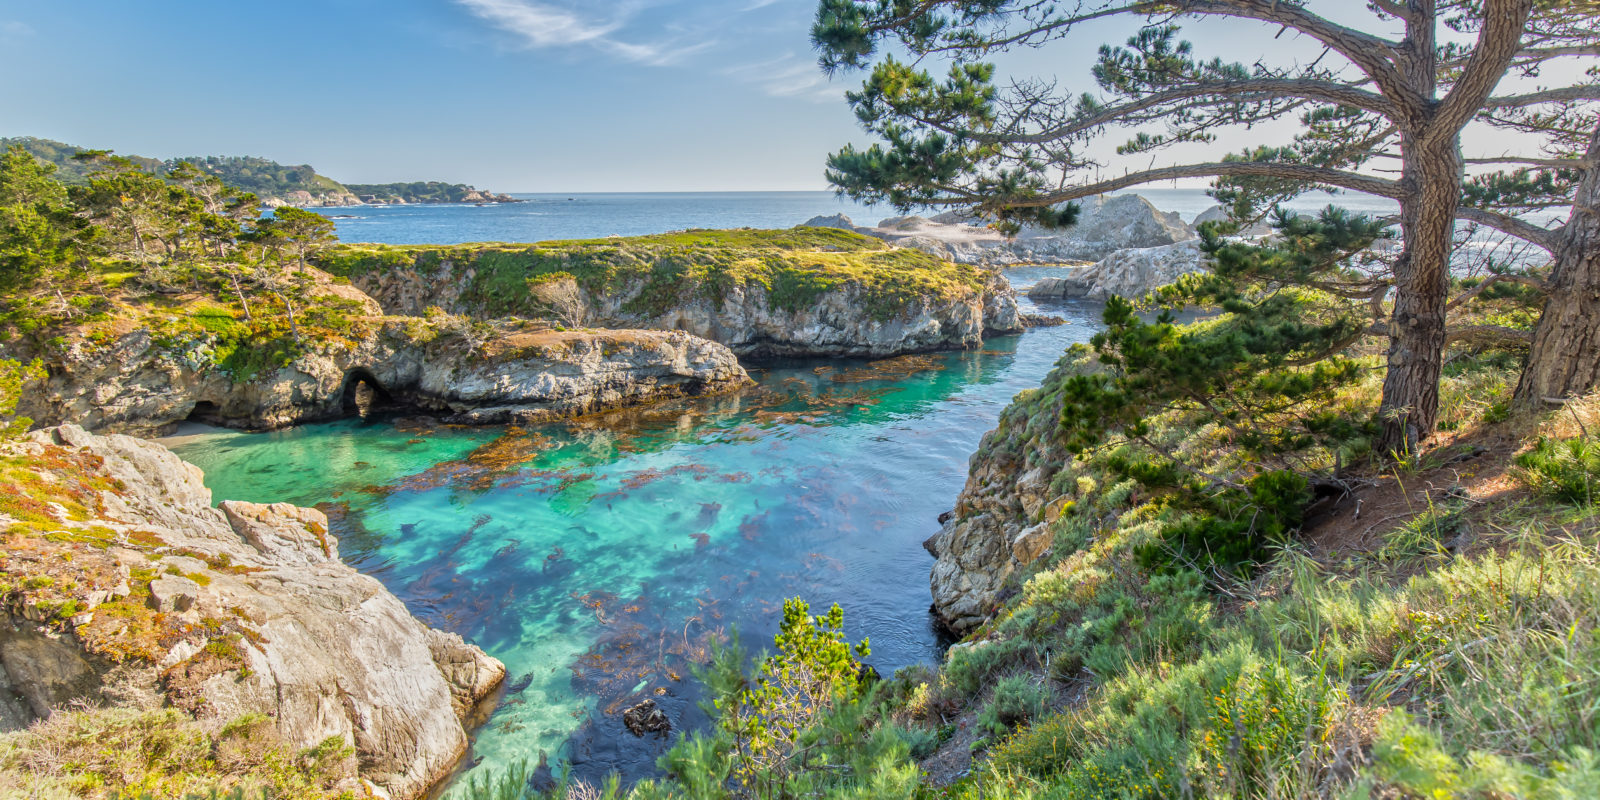 Point Lobos State Reserve at Highway 1 in California